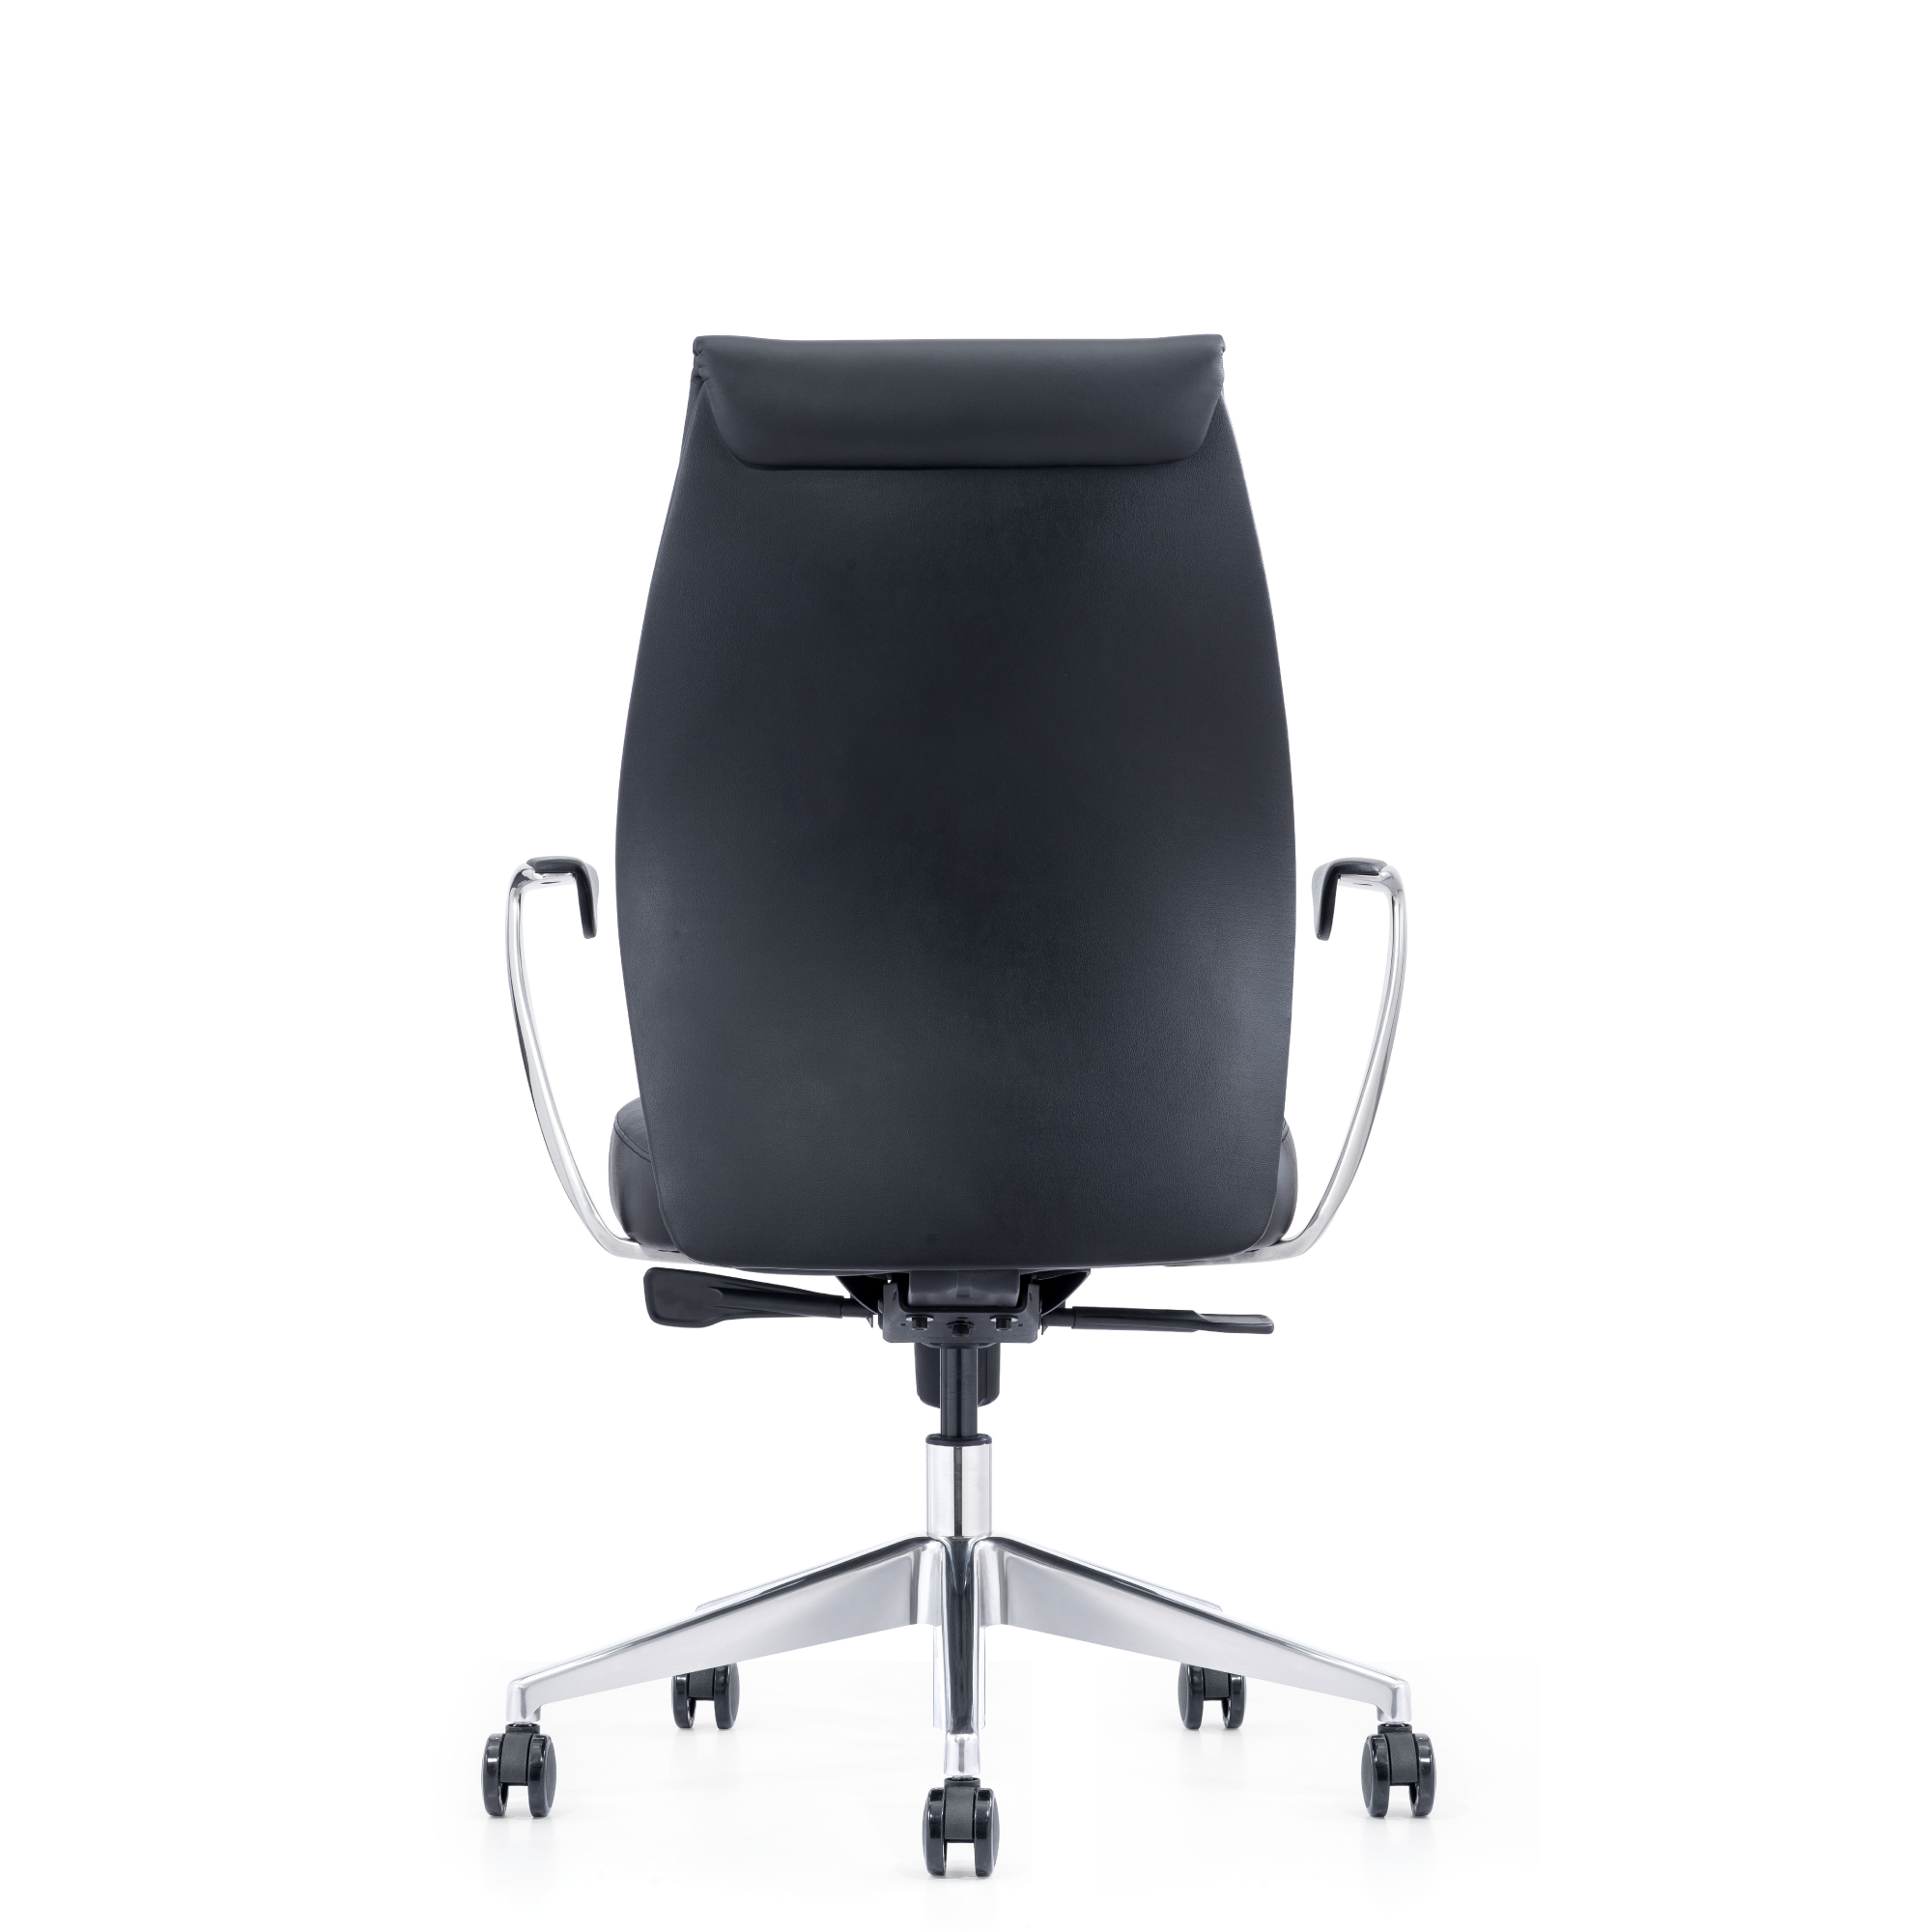 Comfortable Home Office Chair with Wheels and Arms